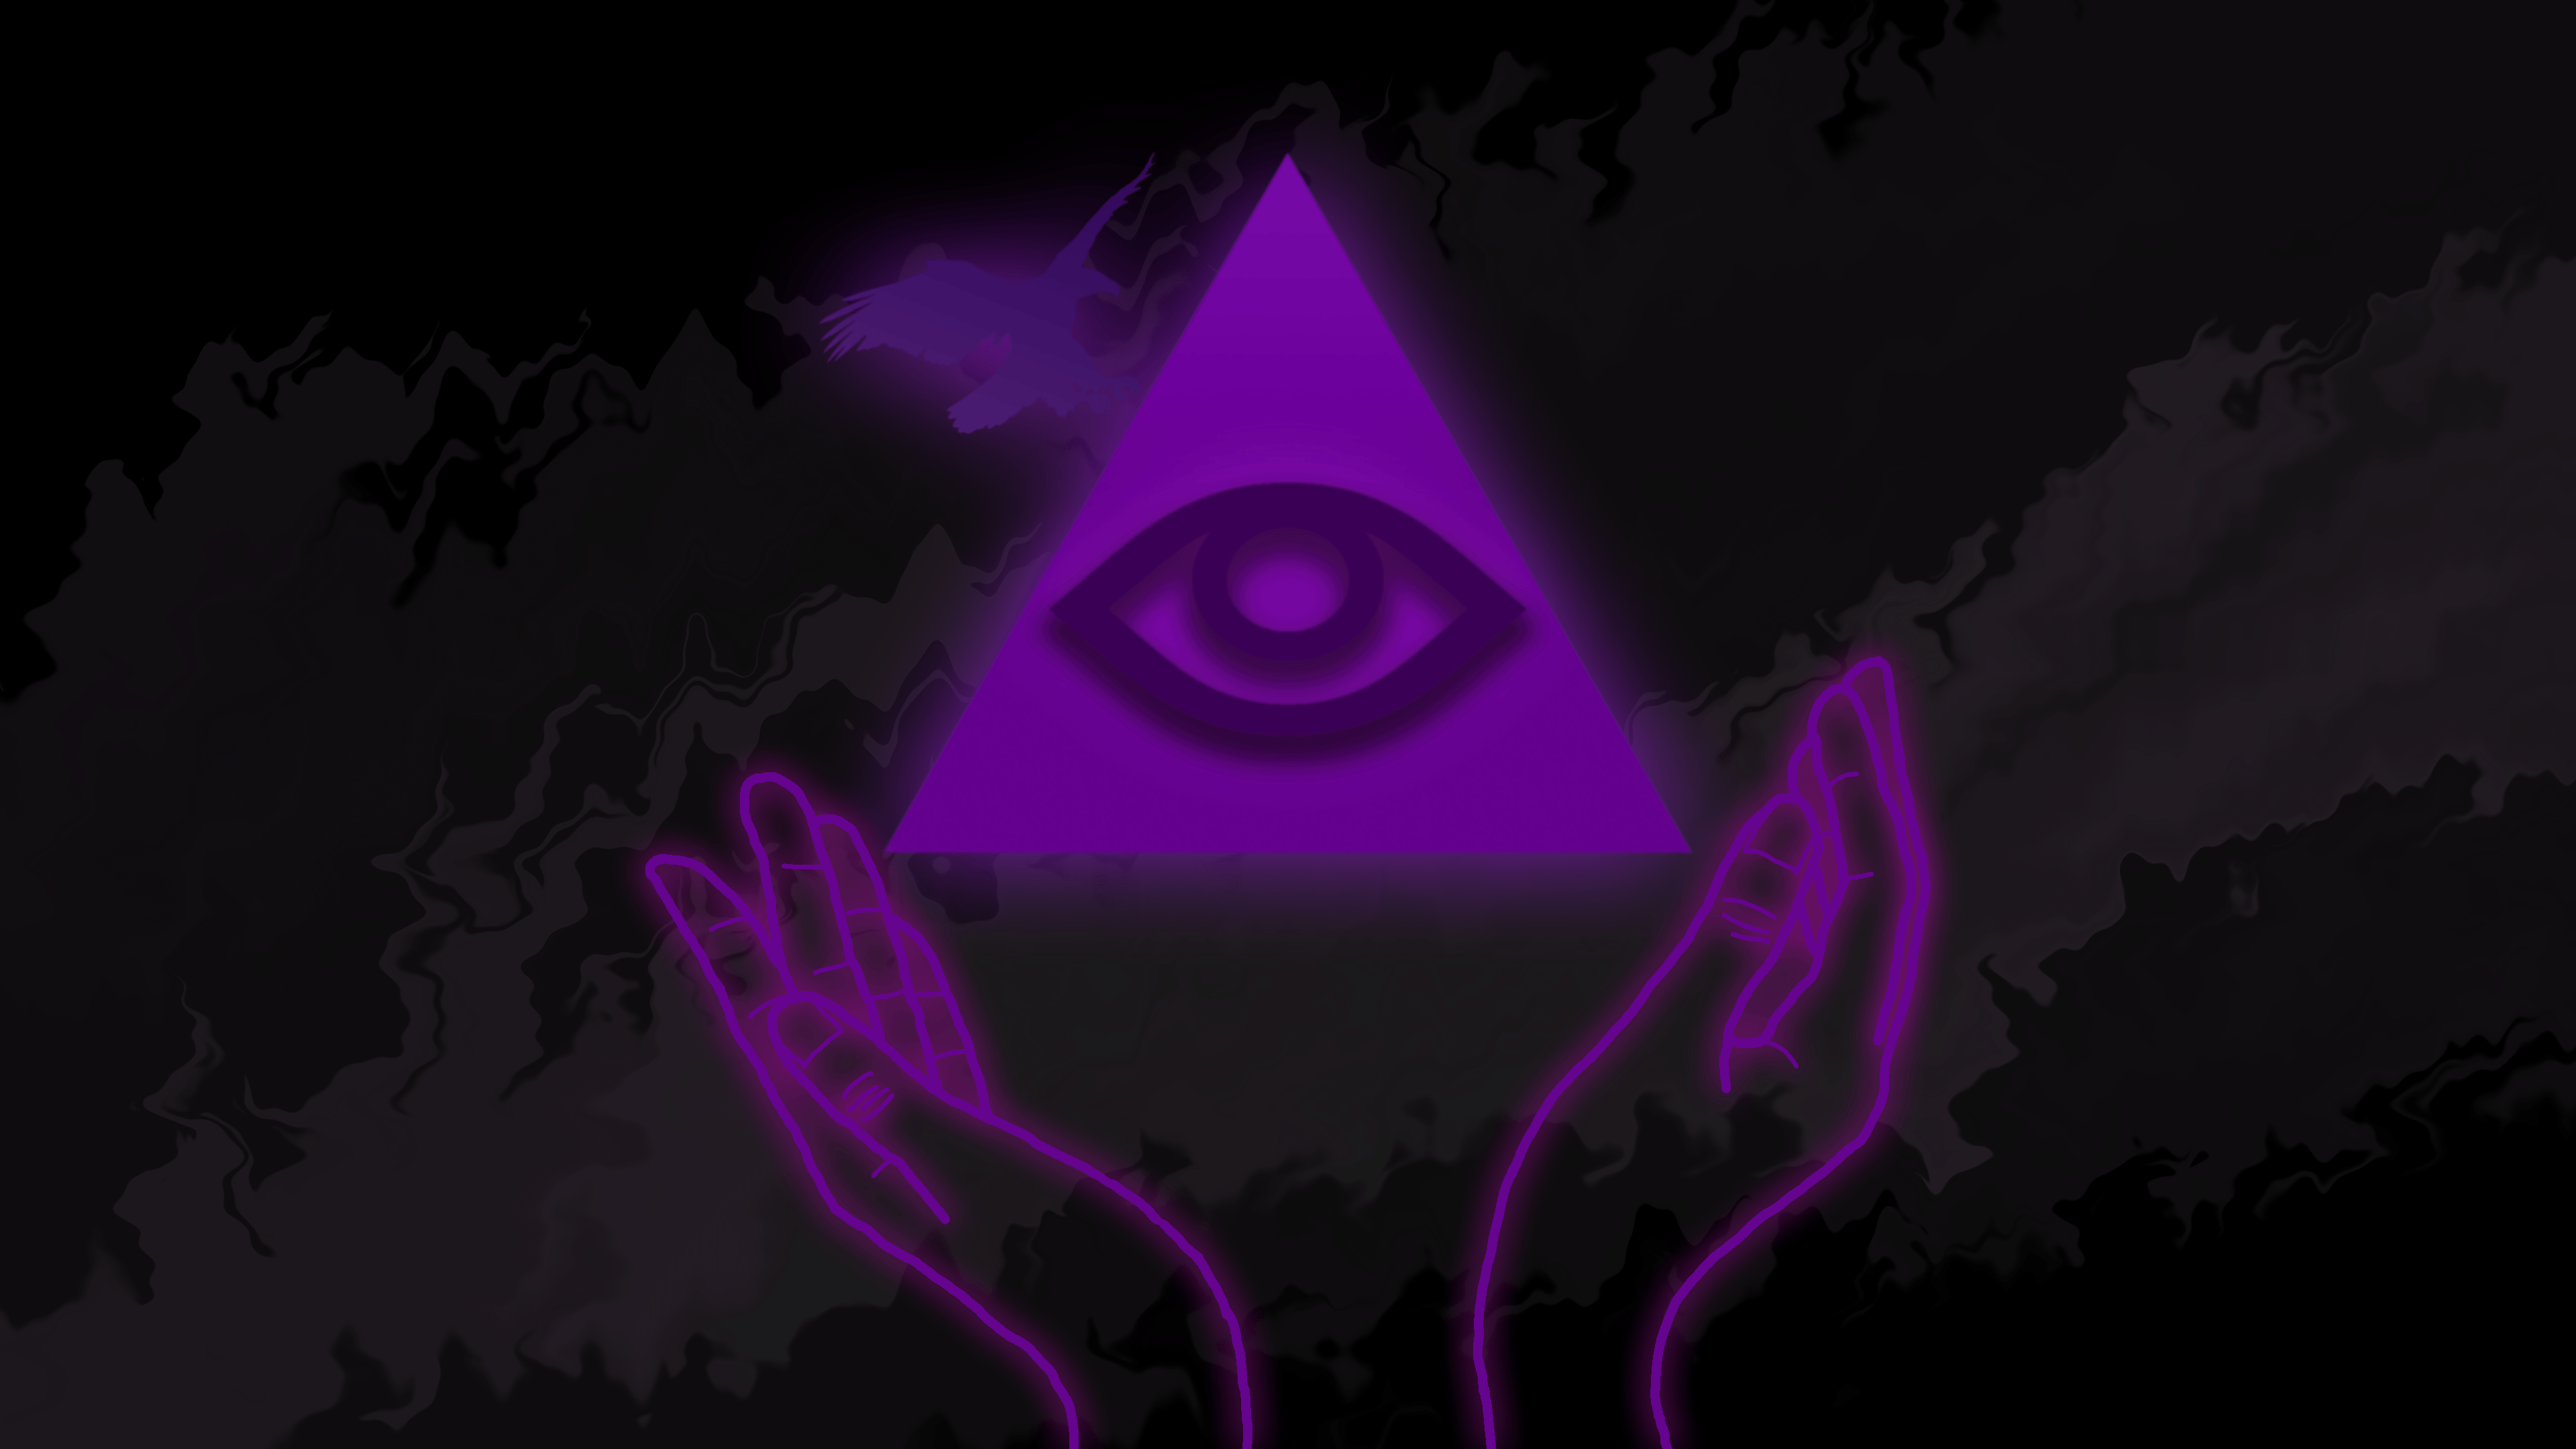 3840x2160 All Seeing Eye w/ Hands and Eagle Wallpaper [4k] by LuaNathan on ...